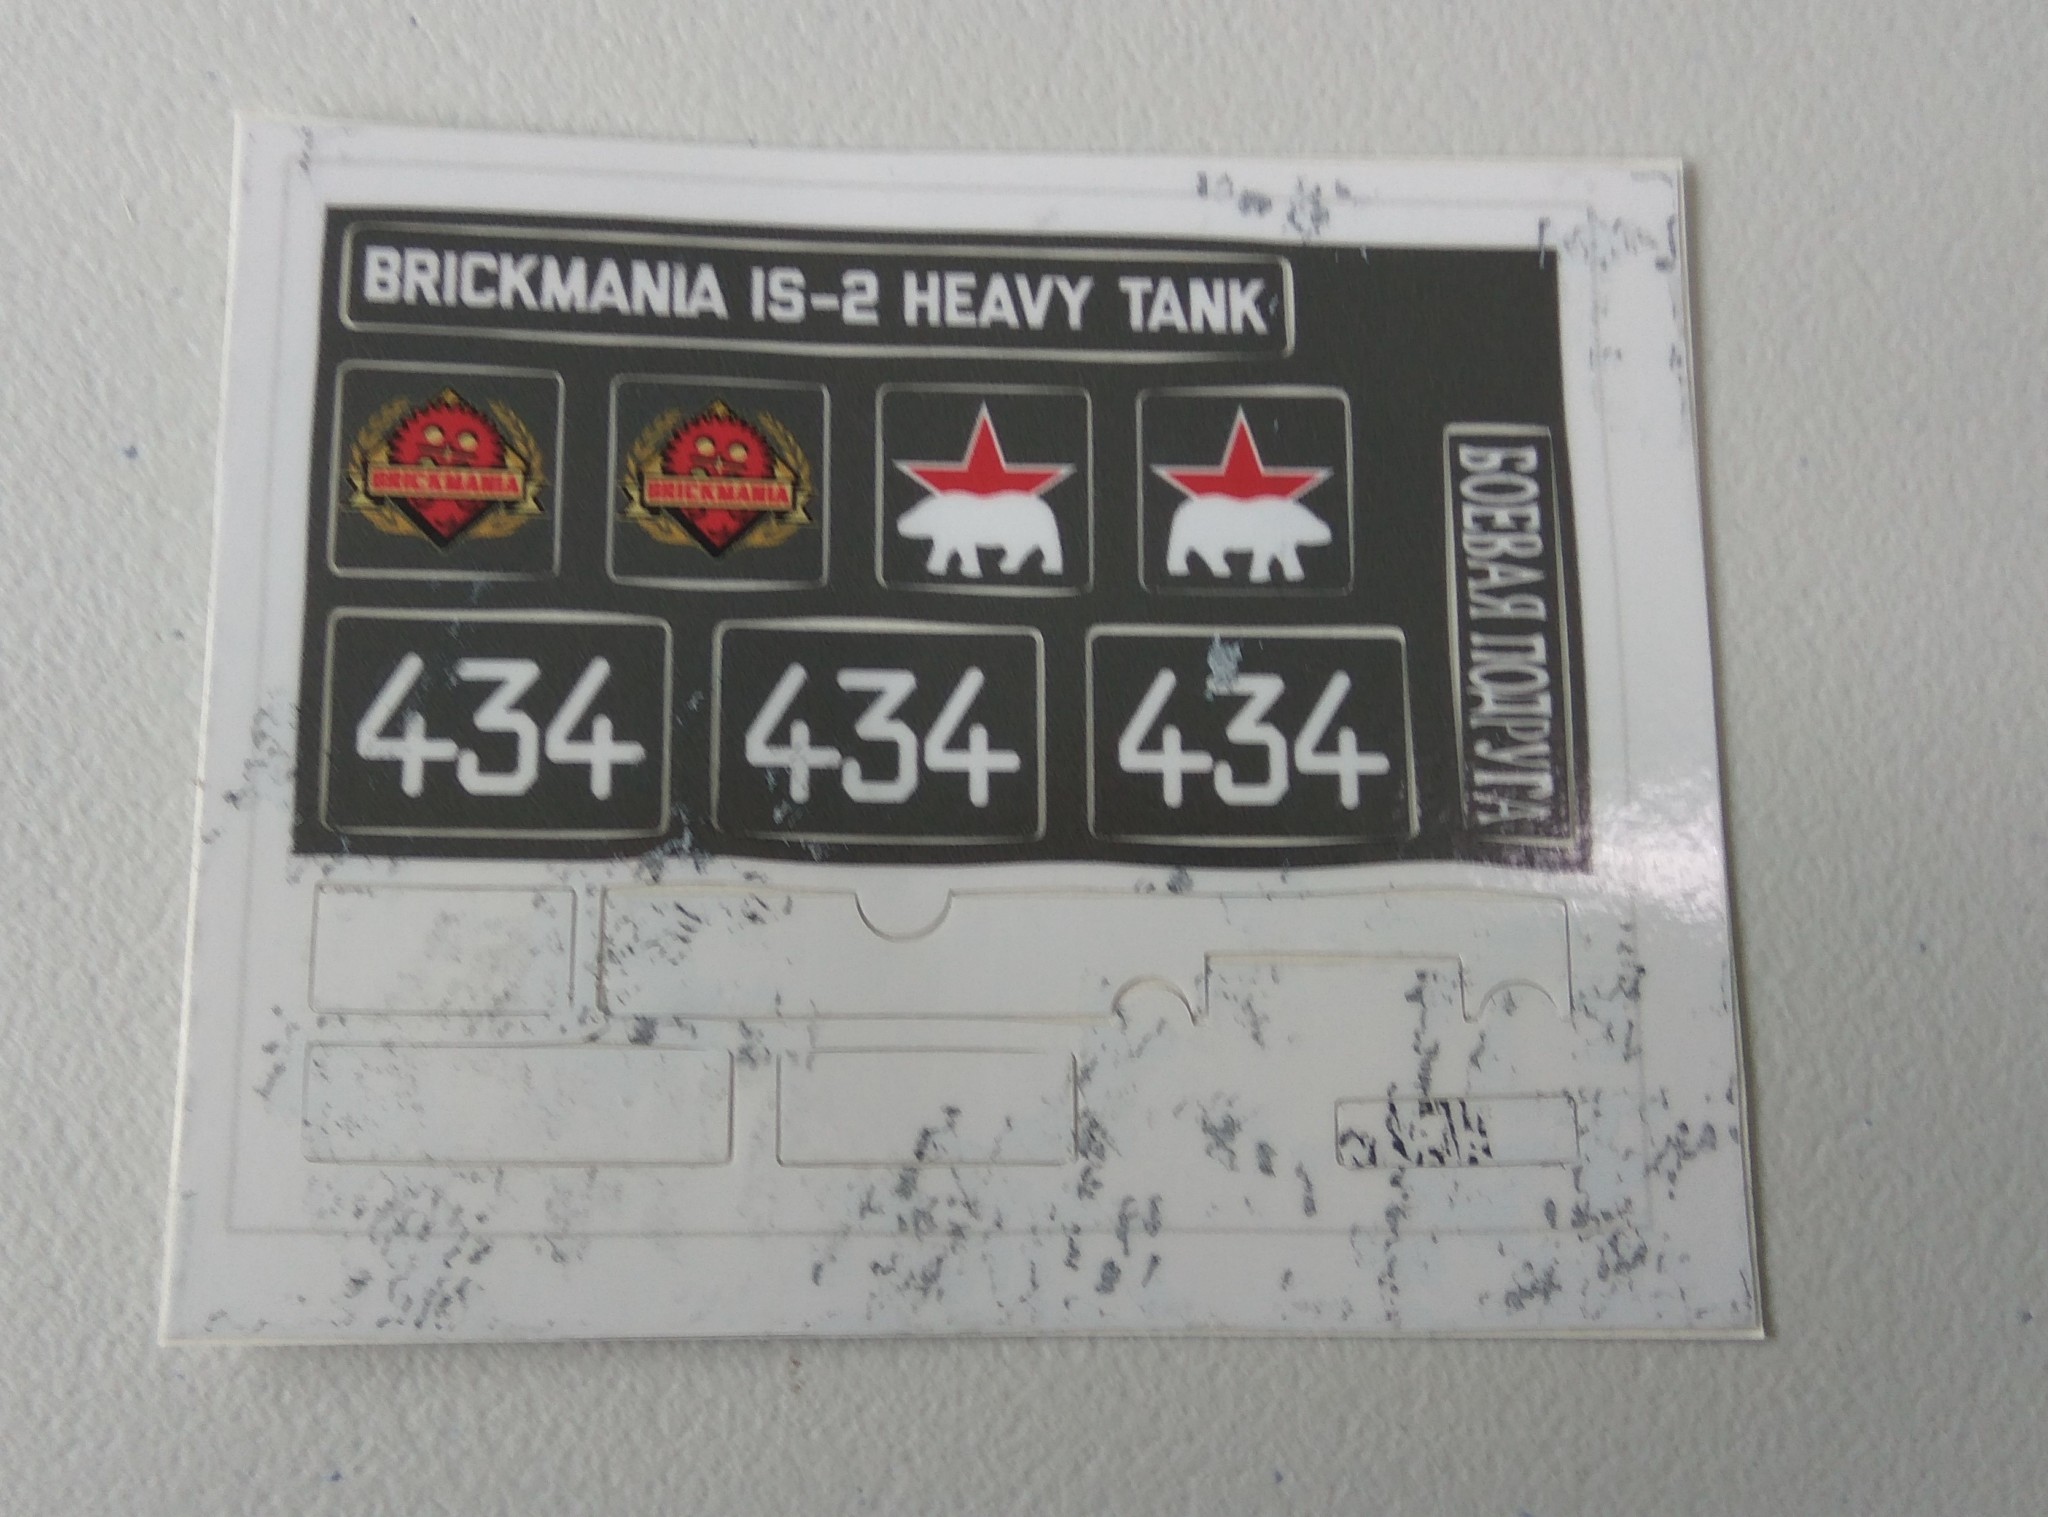 Brickmania Kit Review: IS-2 Russian Heavy Tank (2062) - The